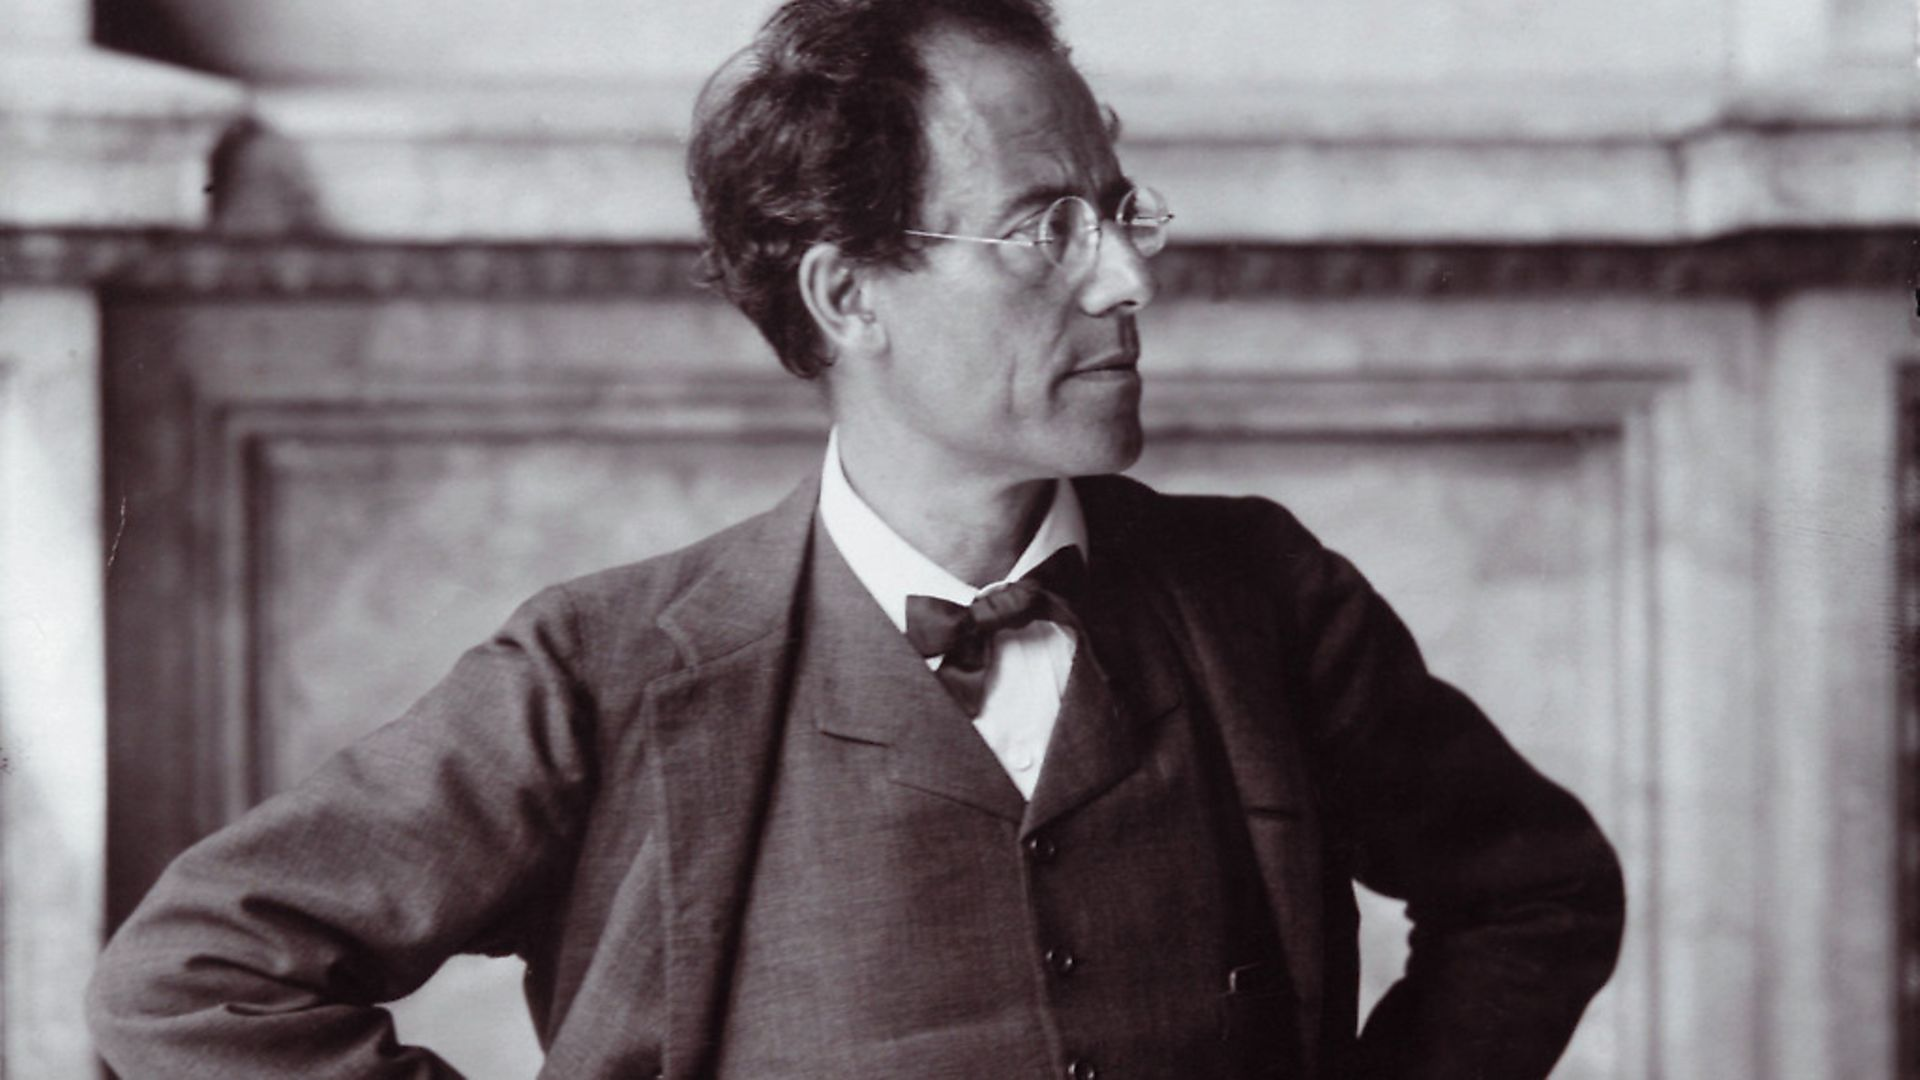 The Austrian composer Gustav Mahler. Photo: Imagno/Getty Images - Credit: Getty Images